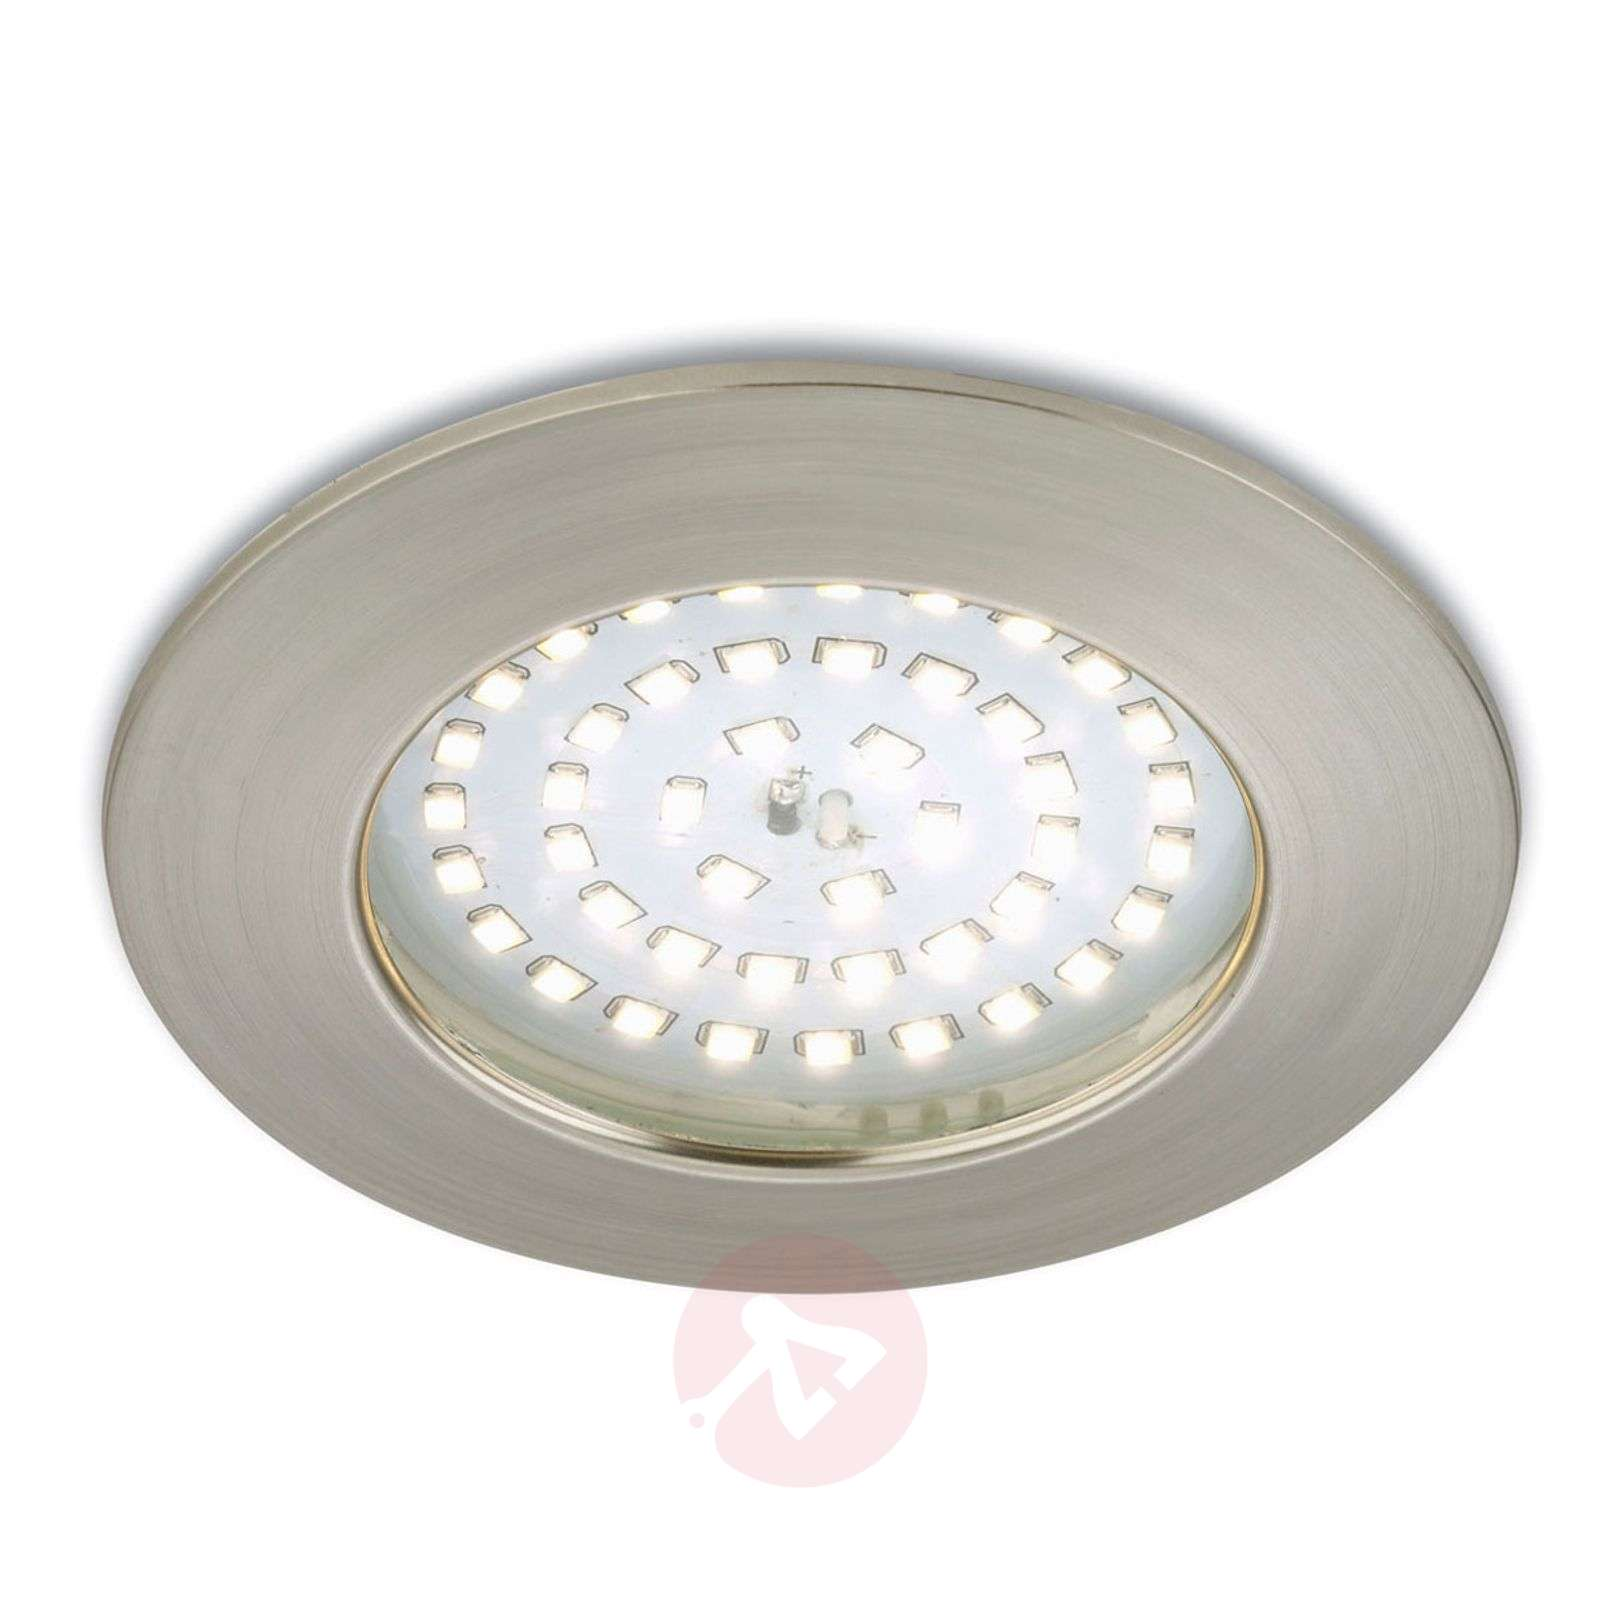 Accent-giving LED recessed light Paul_1510273_1